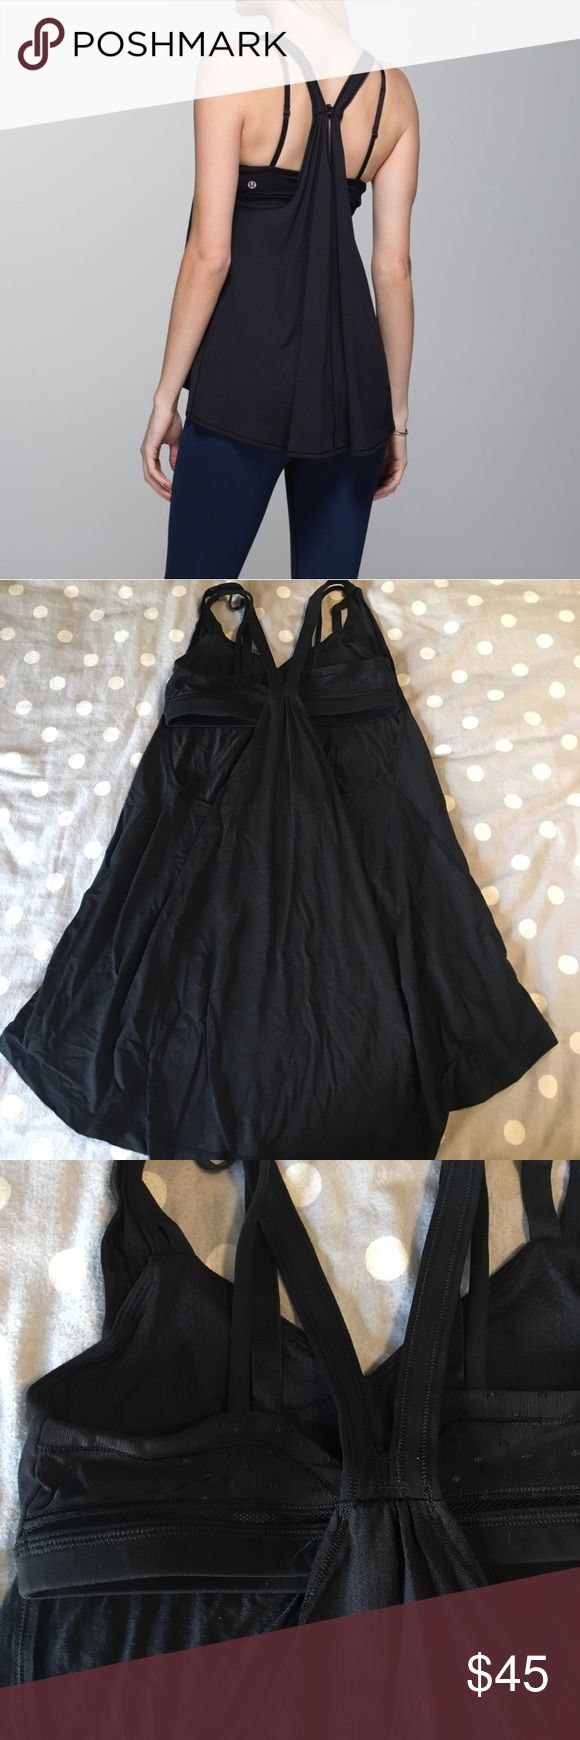 Polka dot strappy oneness tank Amazing oneness tank, strappy and float perfect for Lounging or yoga!! Like new condition! lululemon athletica Tops Tank Tops